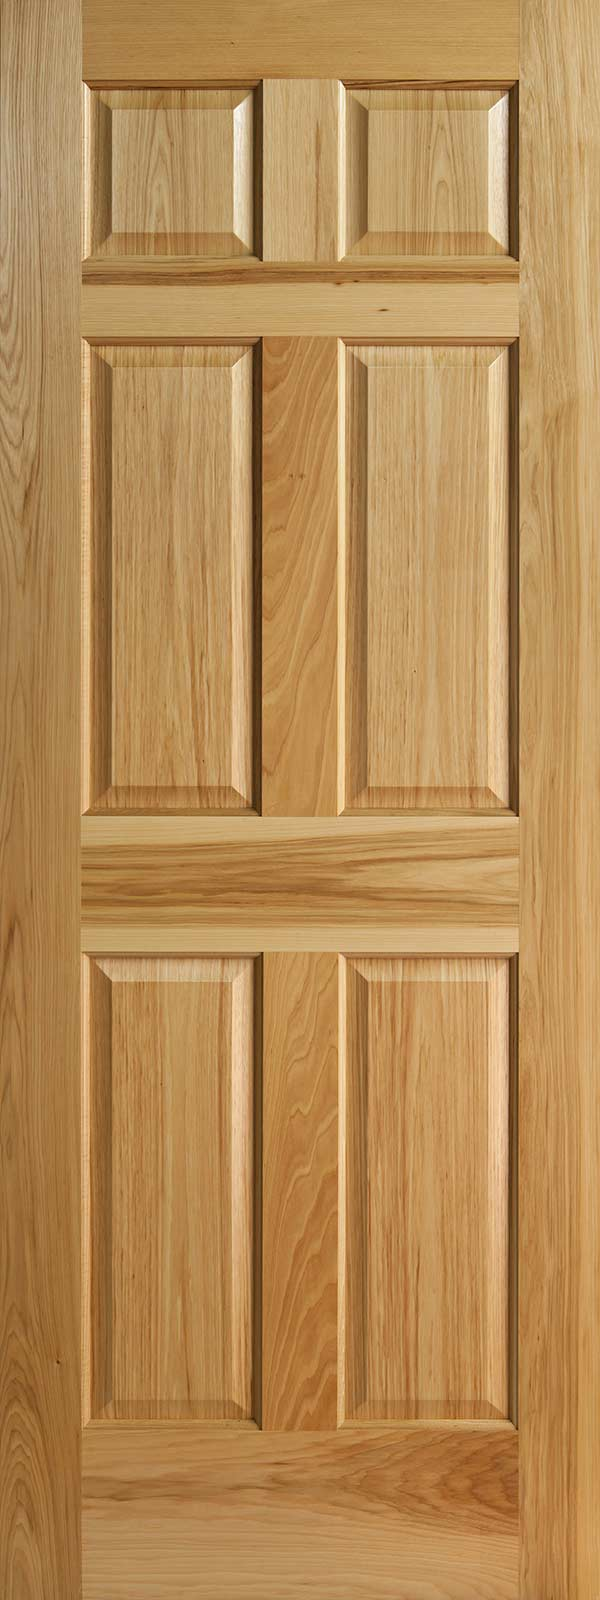 hickory 6 panel interior doors with raised panels homestead doors